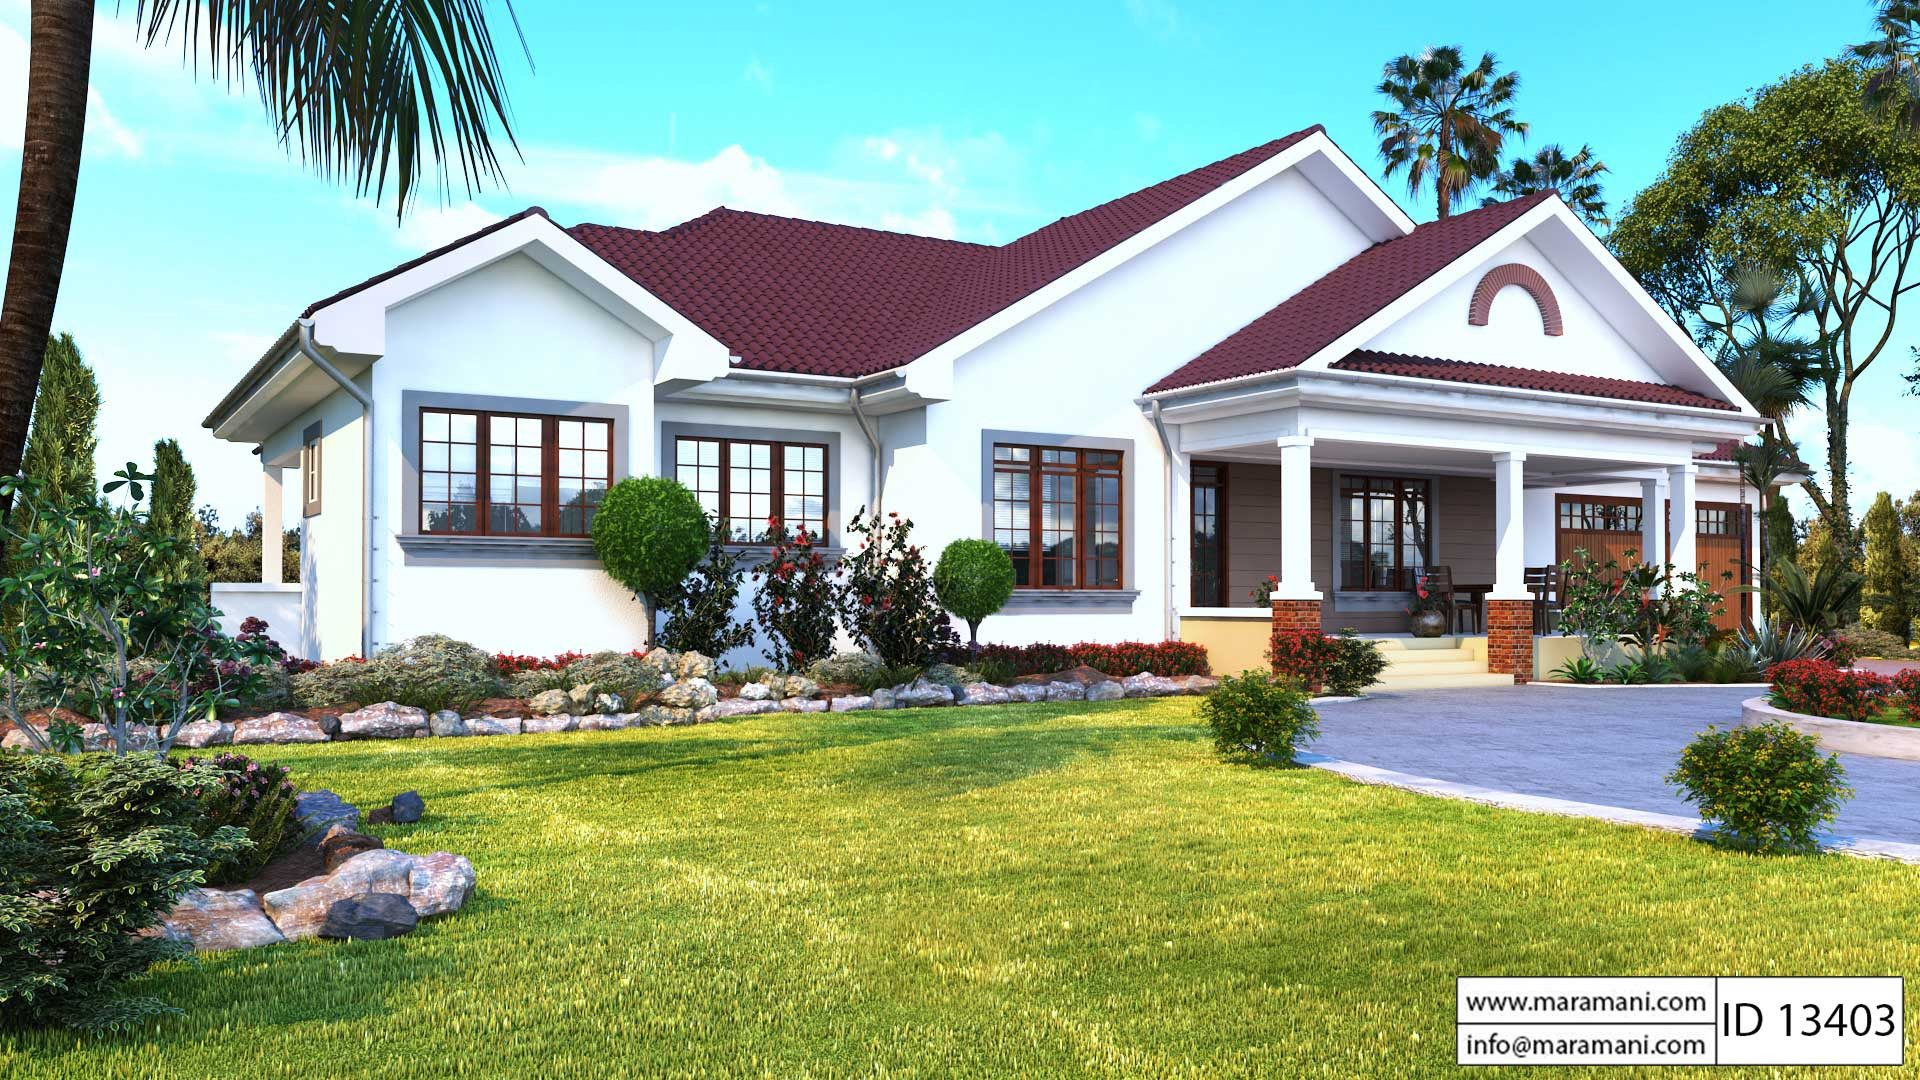 3 Bedroom bungalow with garage - ID 13403 - House Plans by ...